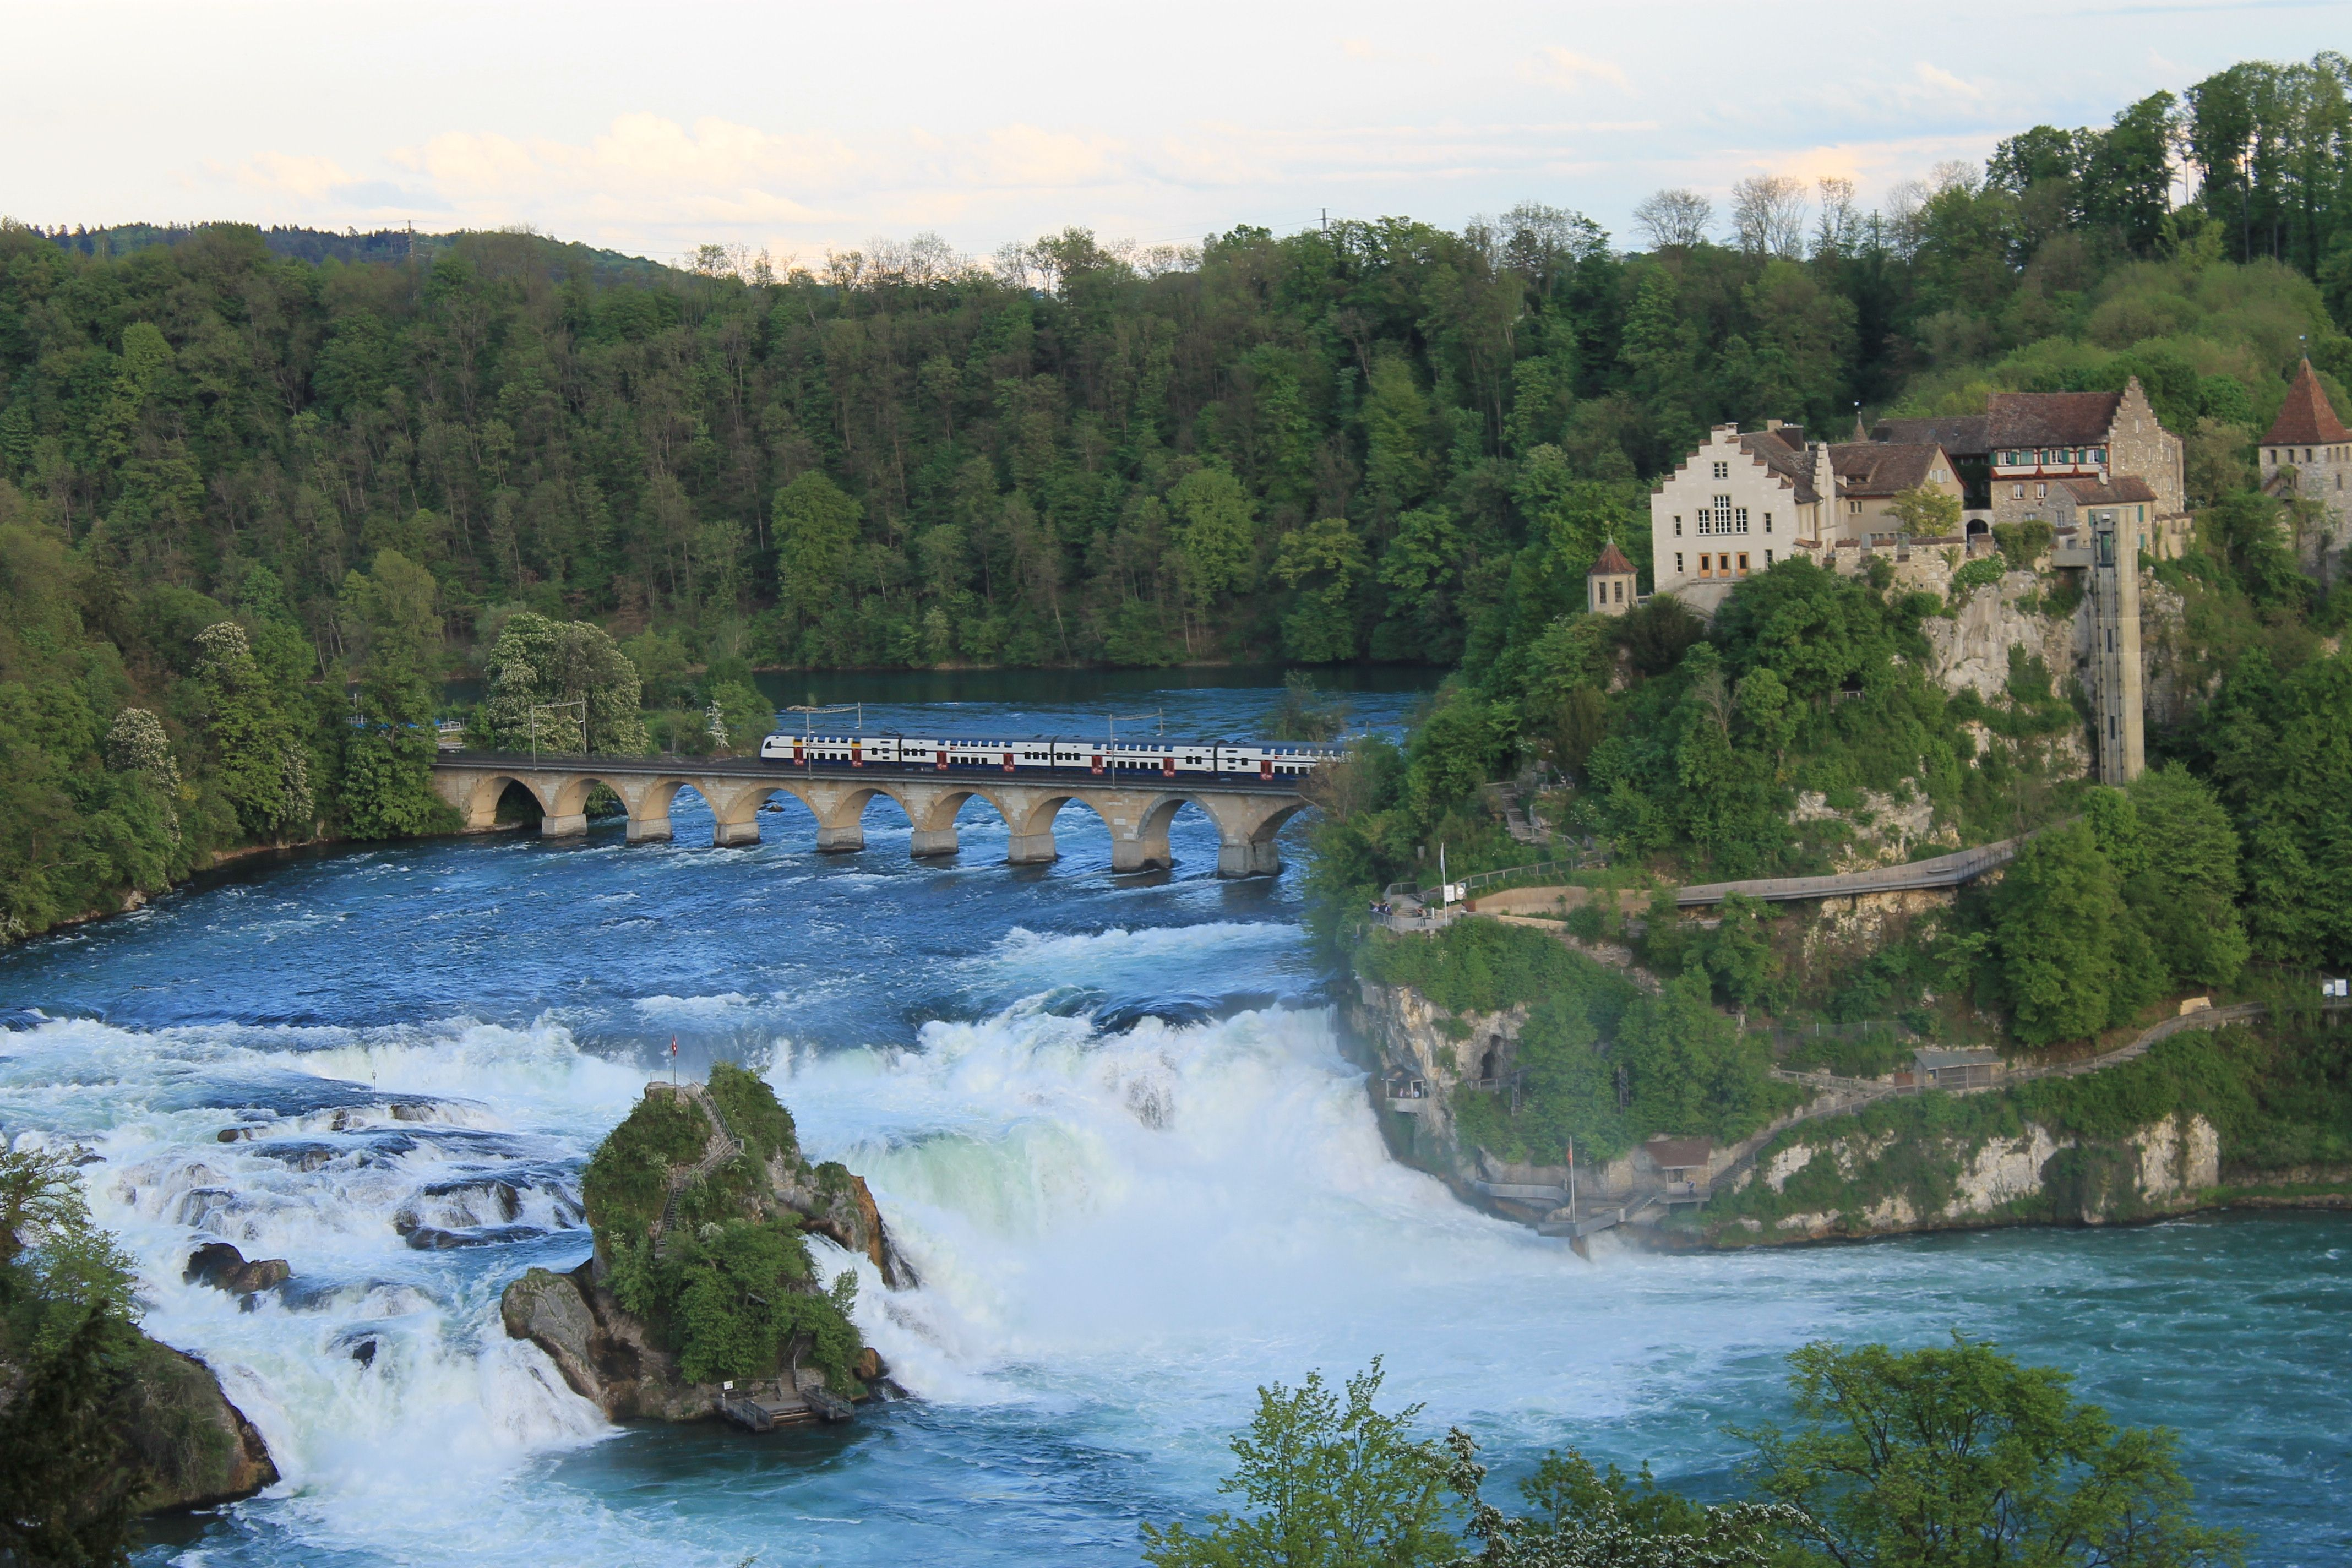 Schaffhausen!  Home Sweet Home... Though I've crossed the bridge... I have yet to take a boat  out & climb to the Swiss flag in the middle of the falls!  I cannot wait to do so on 11/14